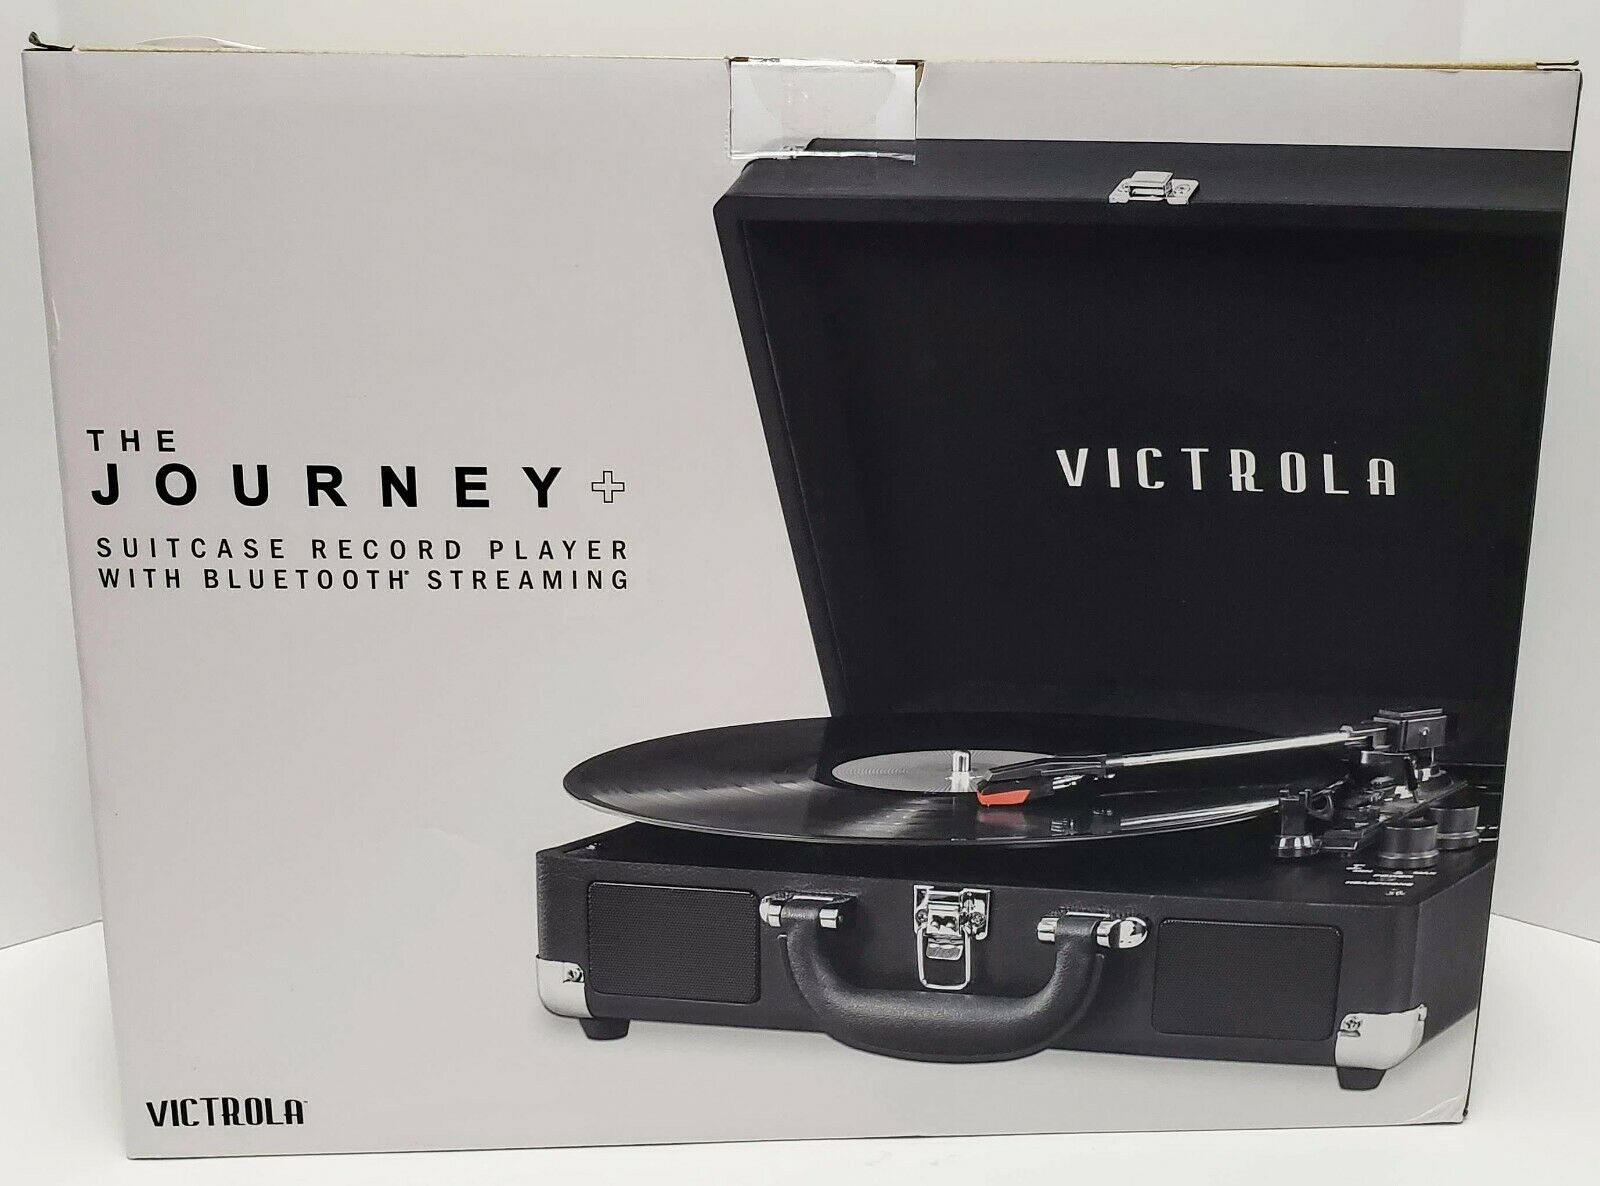 Victrola Journey + Suitcase Record Player With Bluetooth Streaming (New) bluetooth journey player record streaming suitcase victrola with